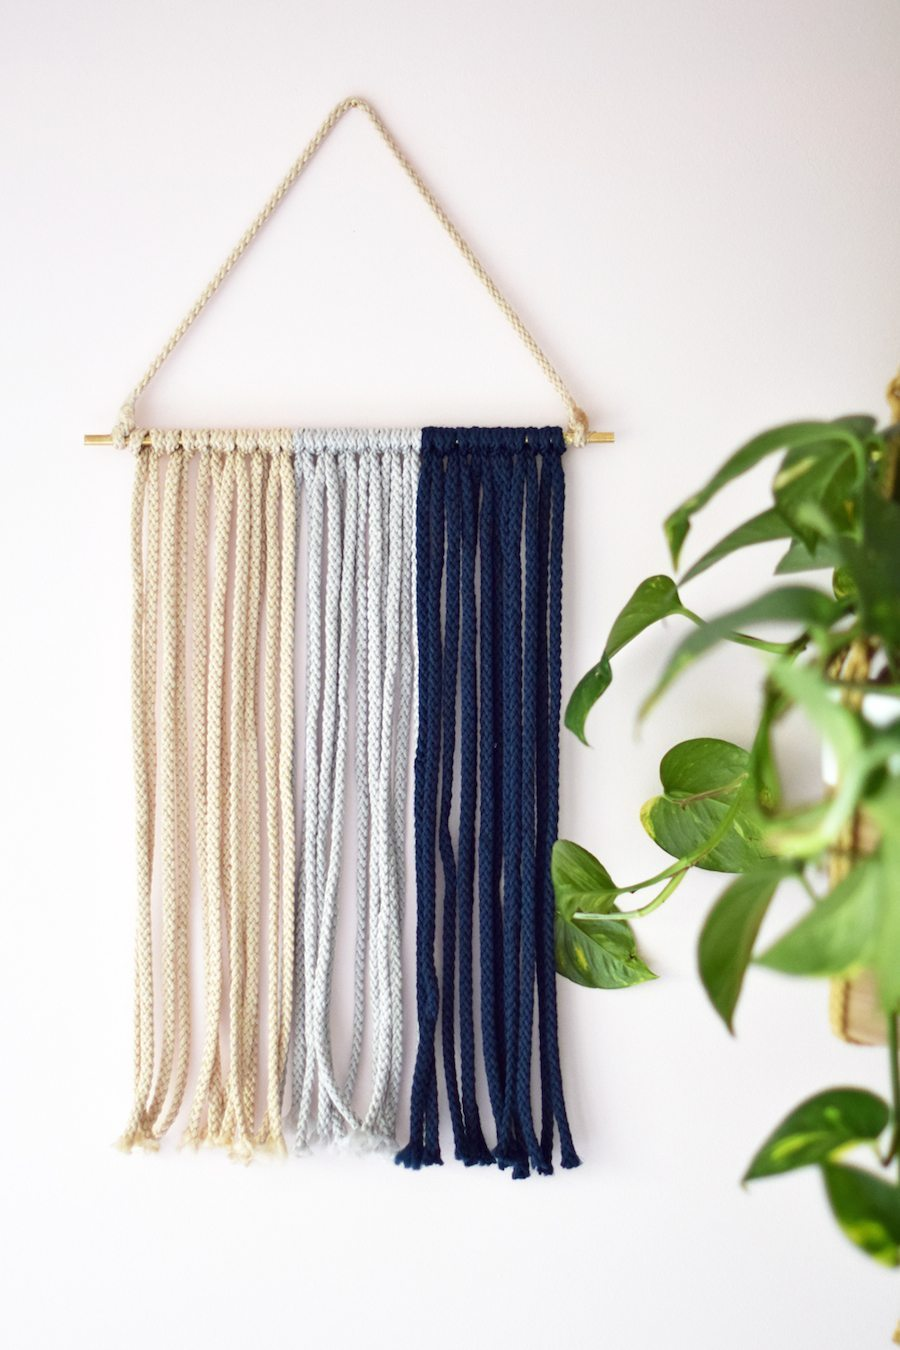 Diy macrame wall hanging darling